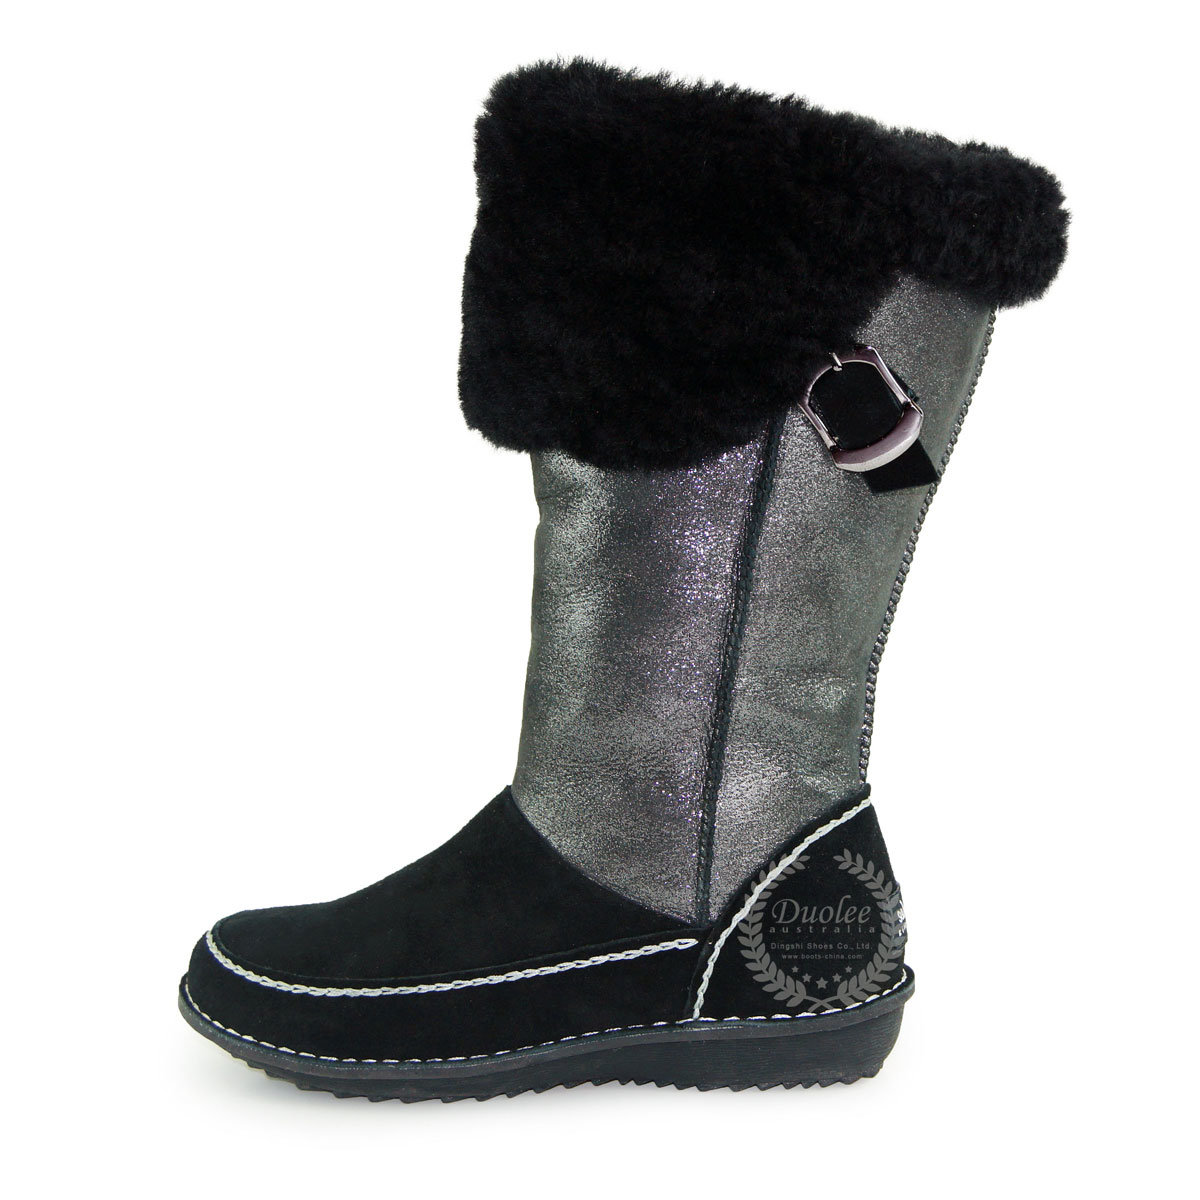 Amazing Keen Bailey High Winter Boots  Waterproof Insulated For Women In